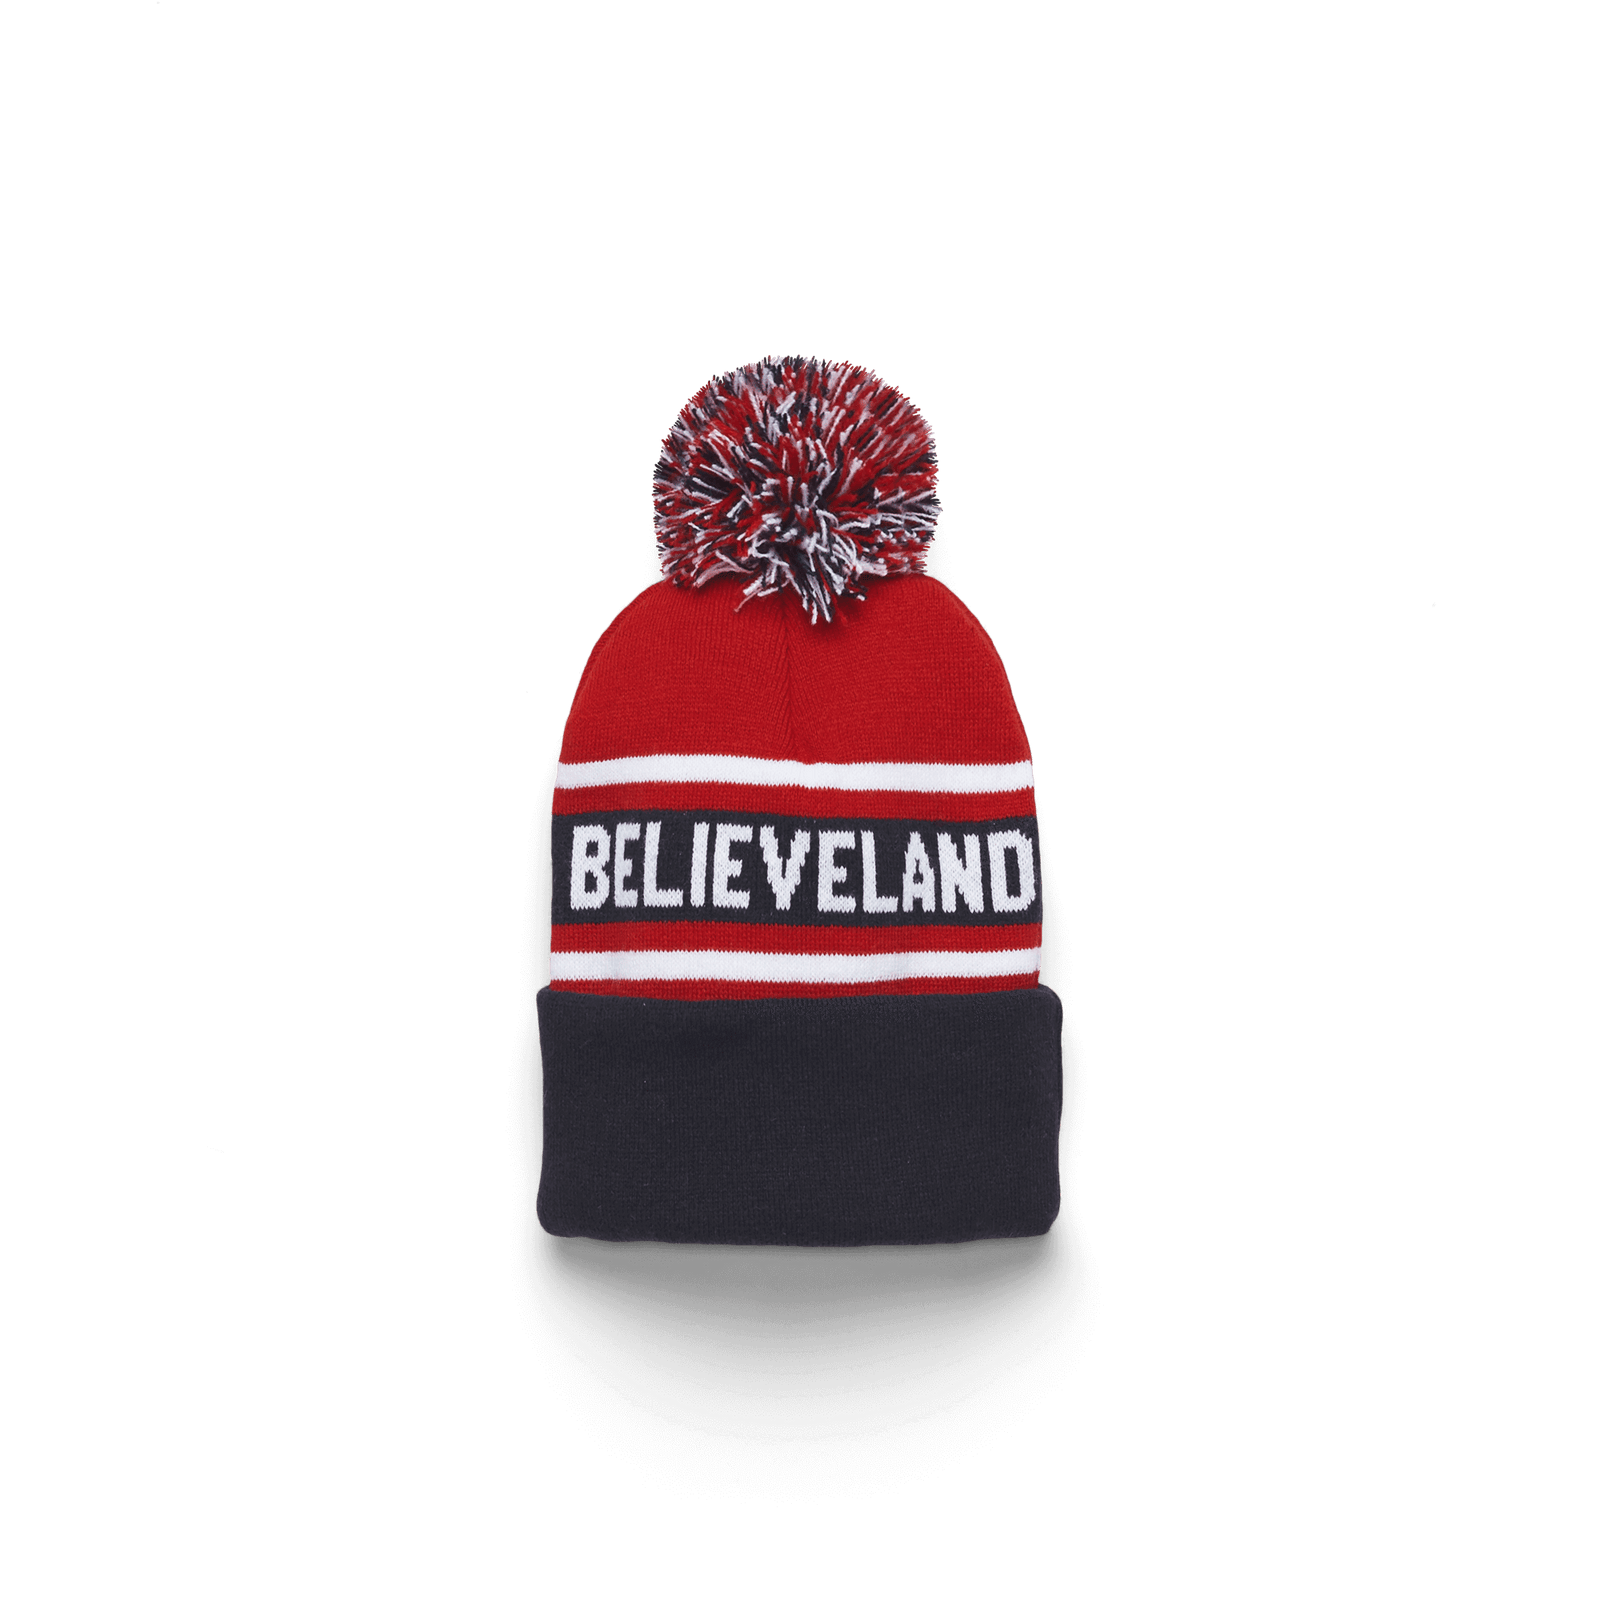 Believeland Knit In Pom Beanie